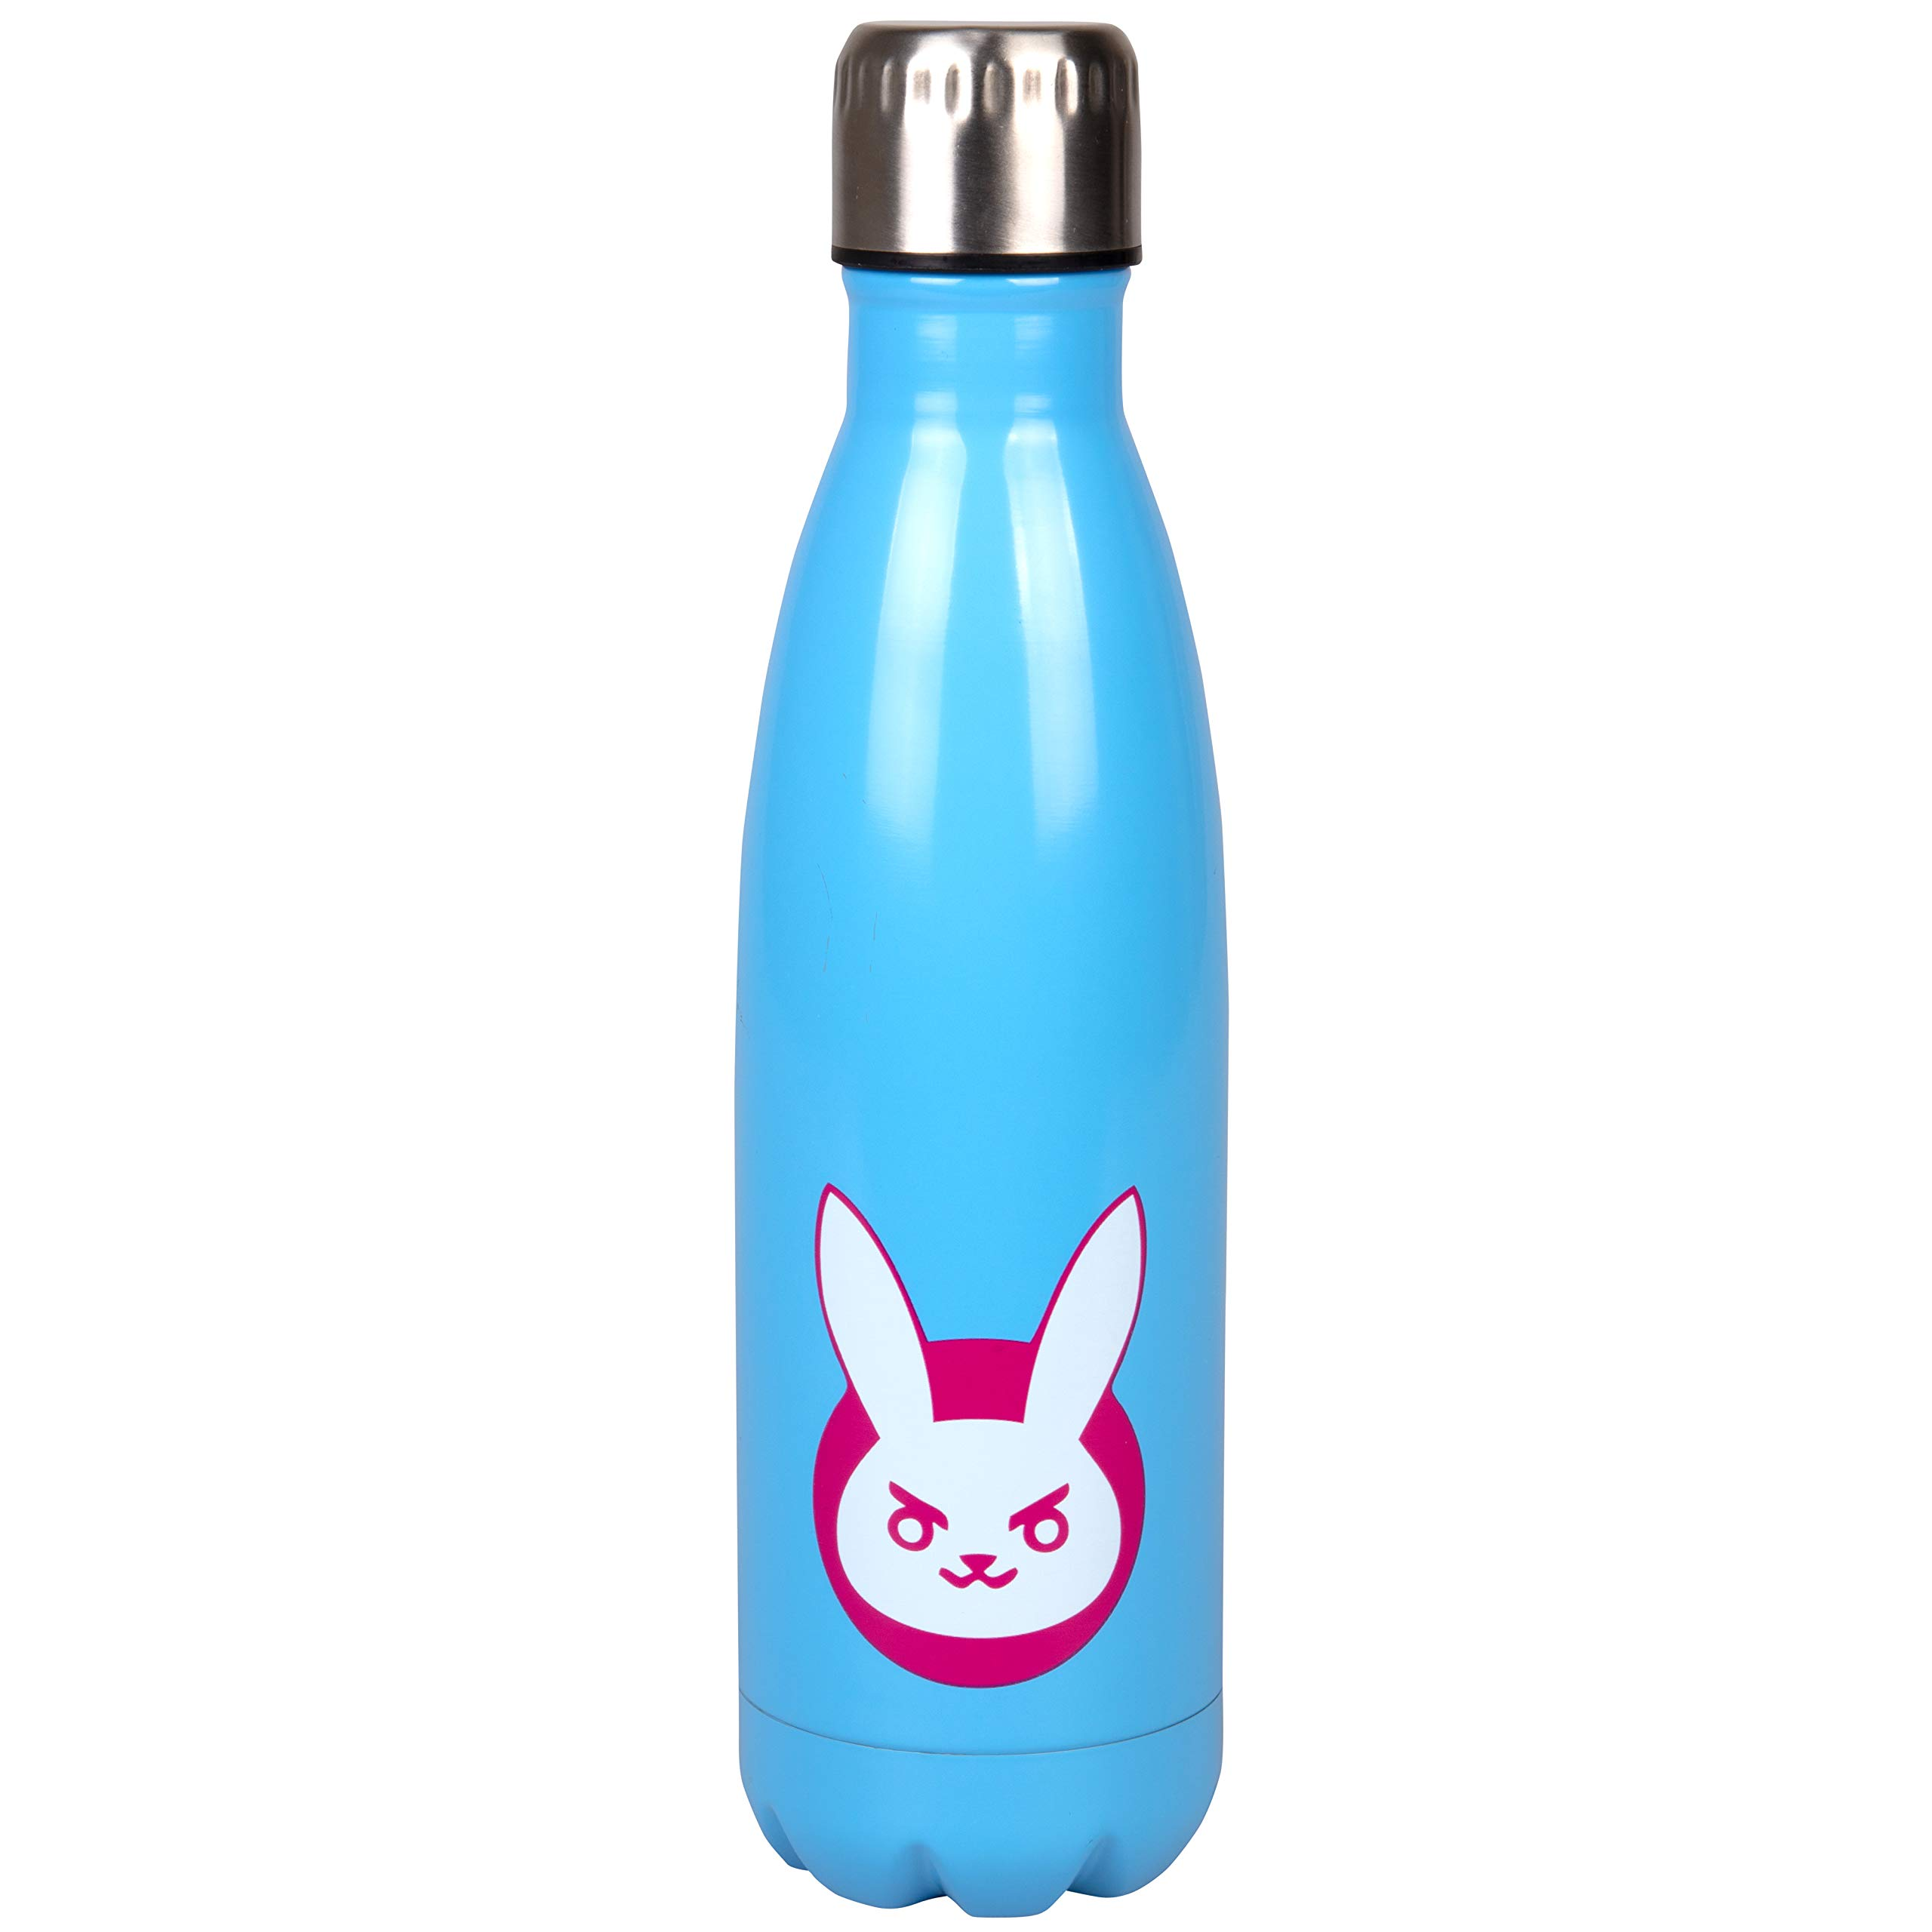 Overwatch D.Va Stainless Steel Insulated Travel Water Bottle - 17 oz